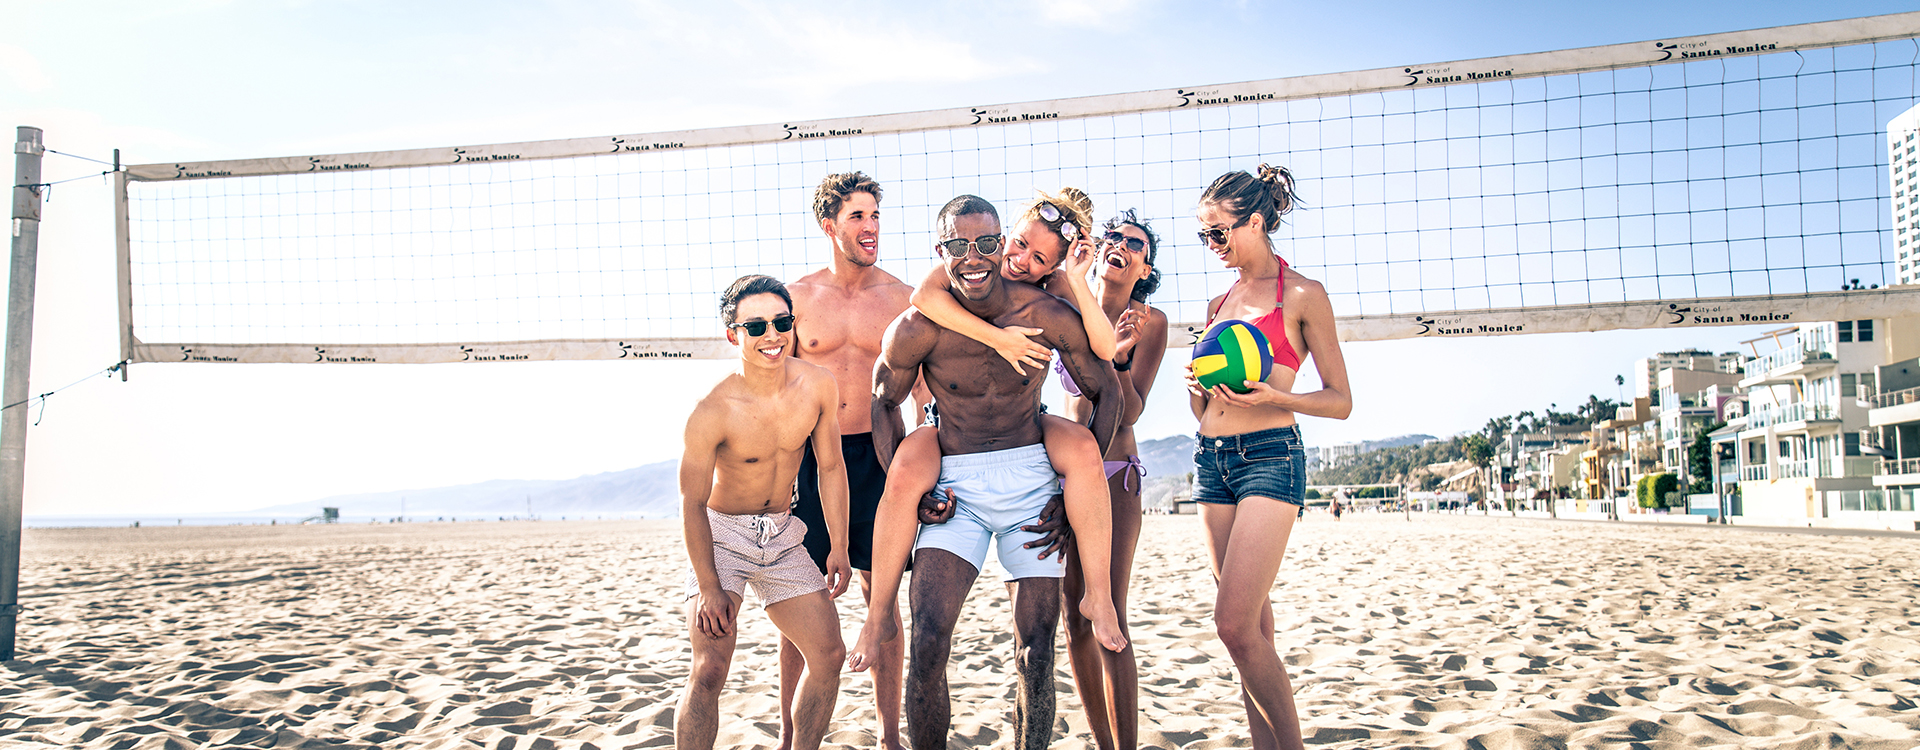 beach volleyball players in santa monica